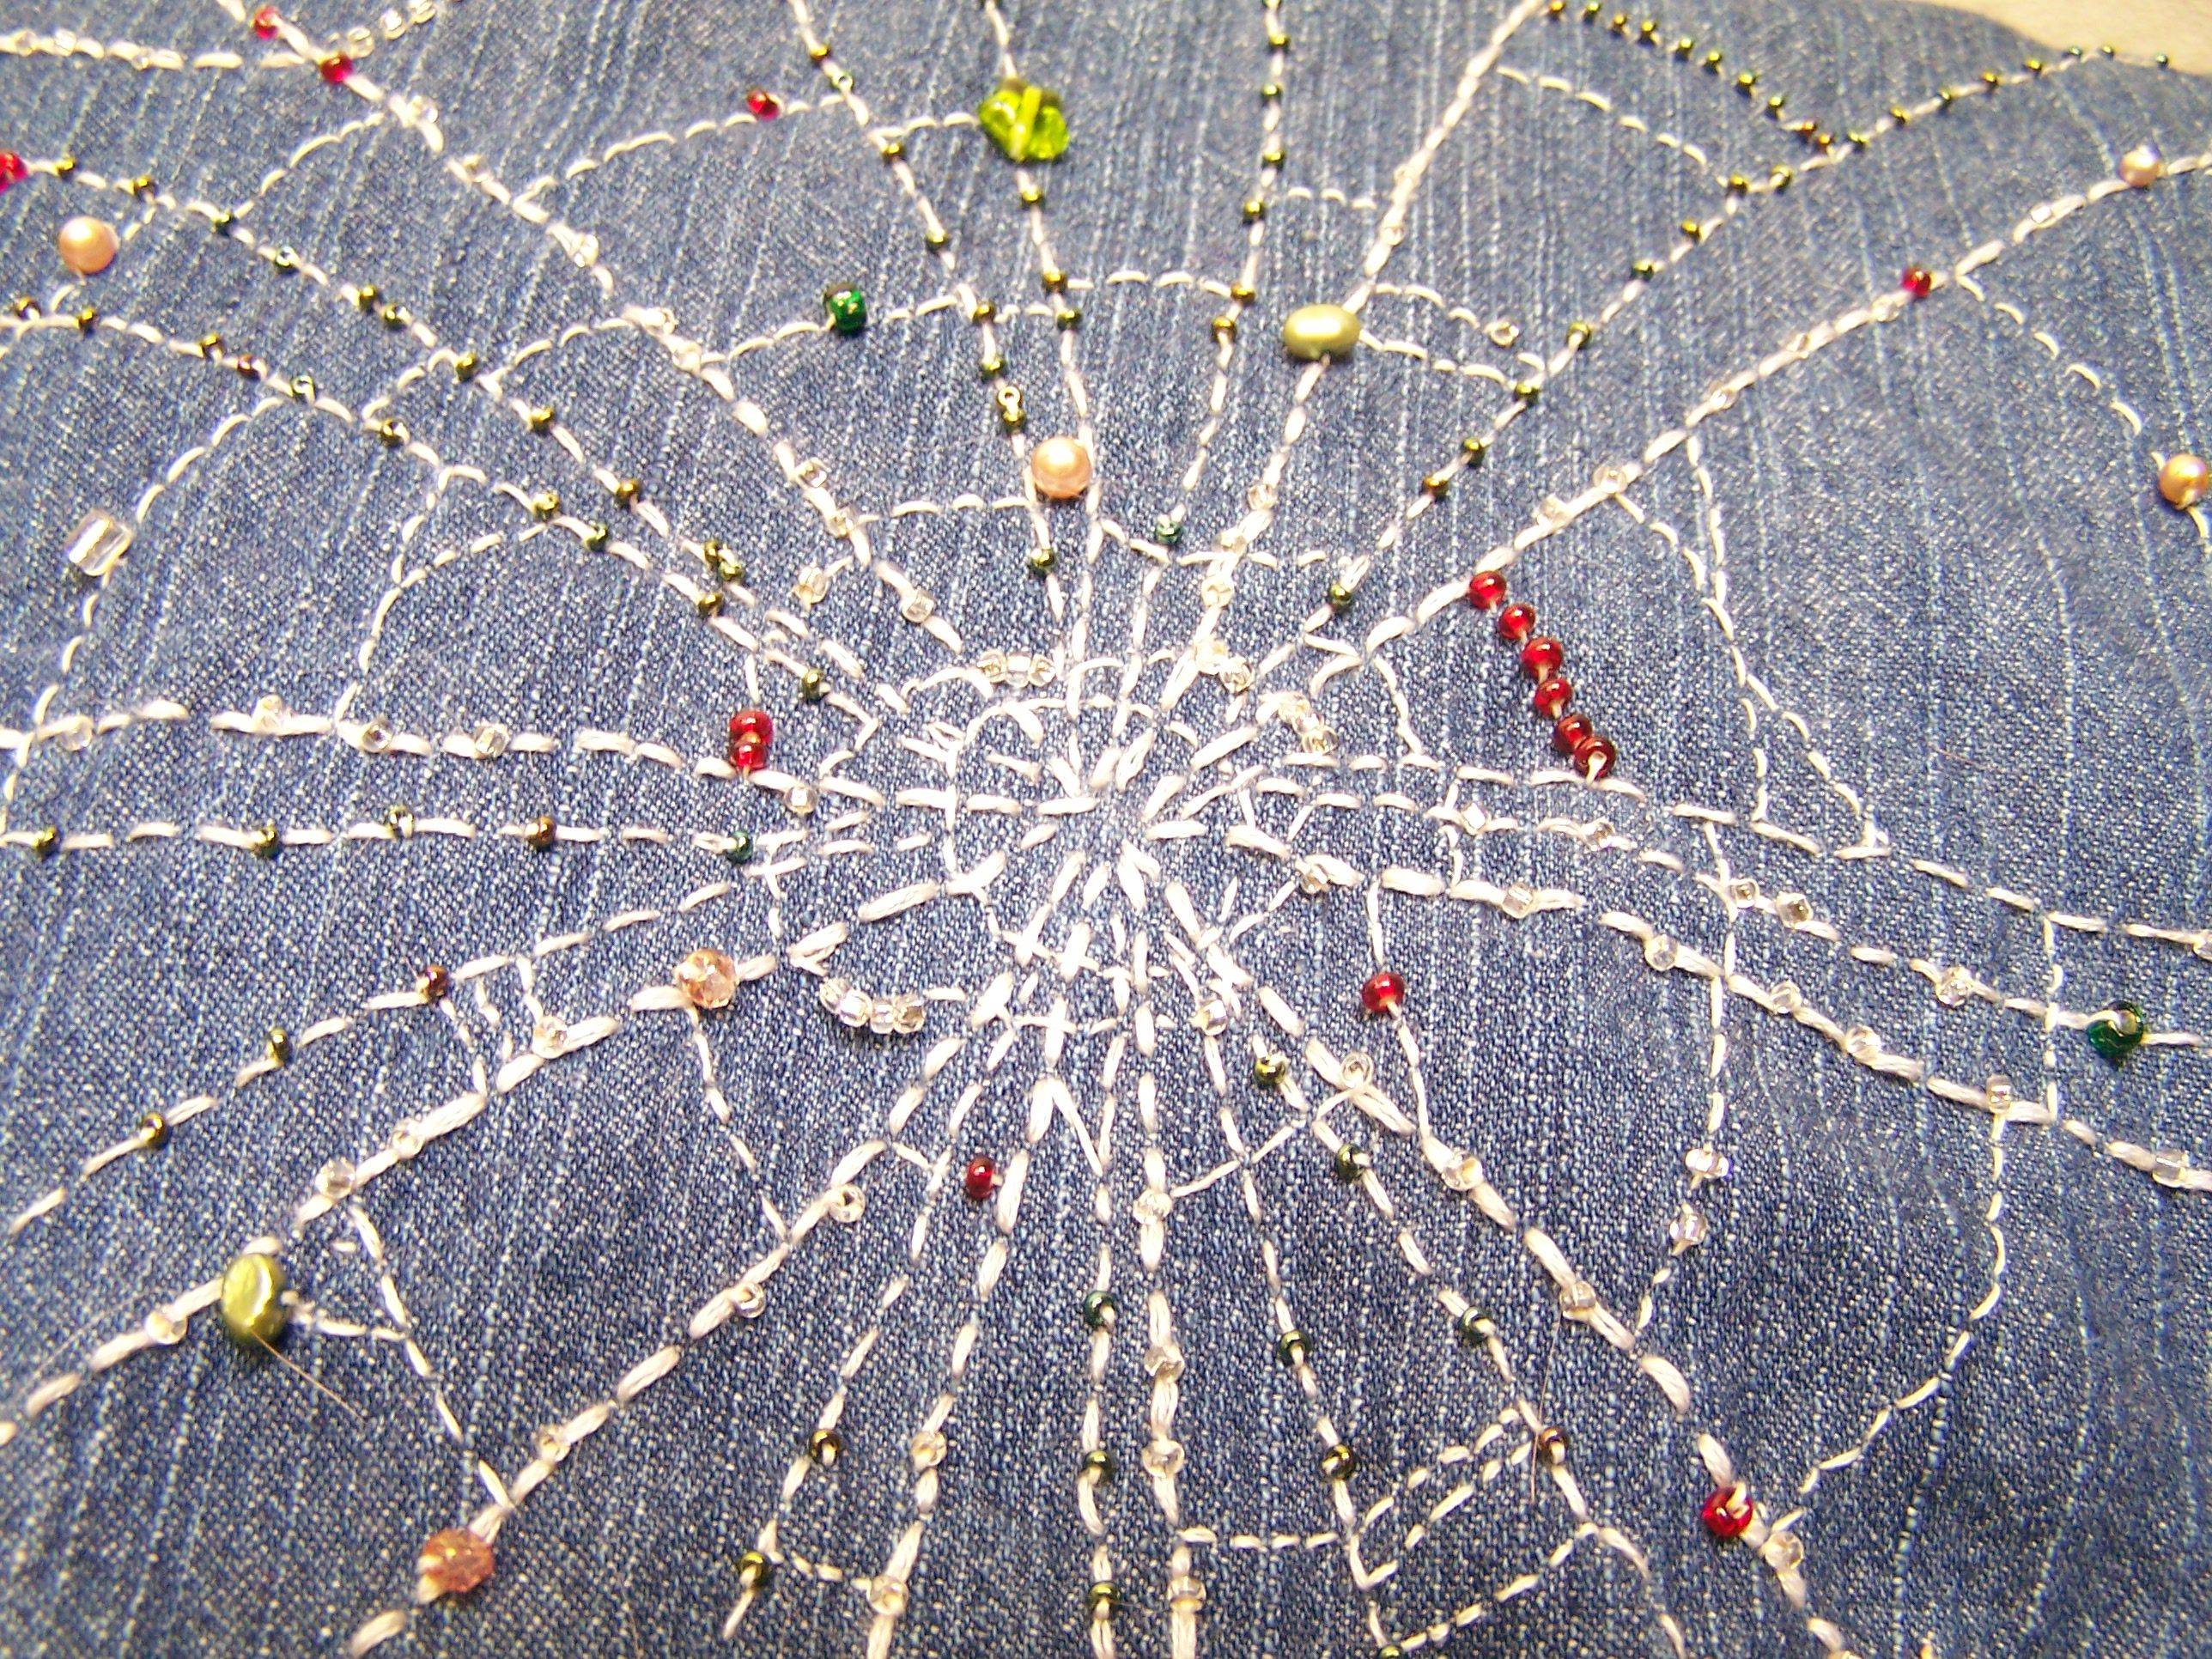 Ucycled denim jacket, sleeves and collar removed, with spiderweb embroidery and beading. Close up view. Work done by Sharon Robb-Chism